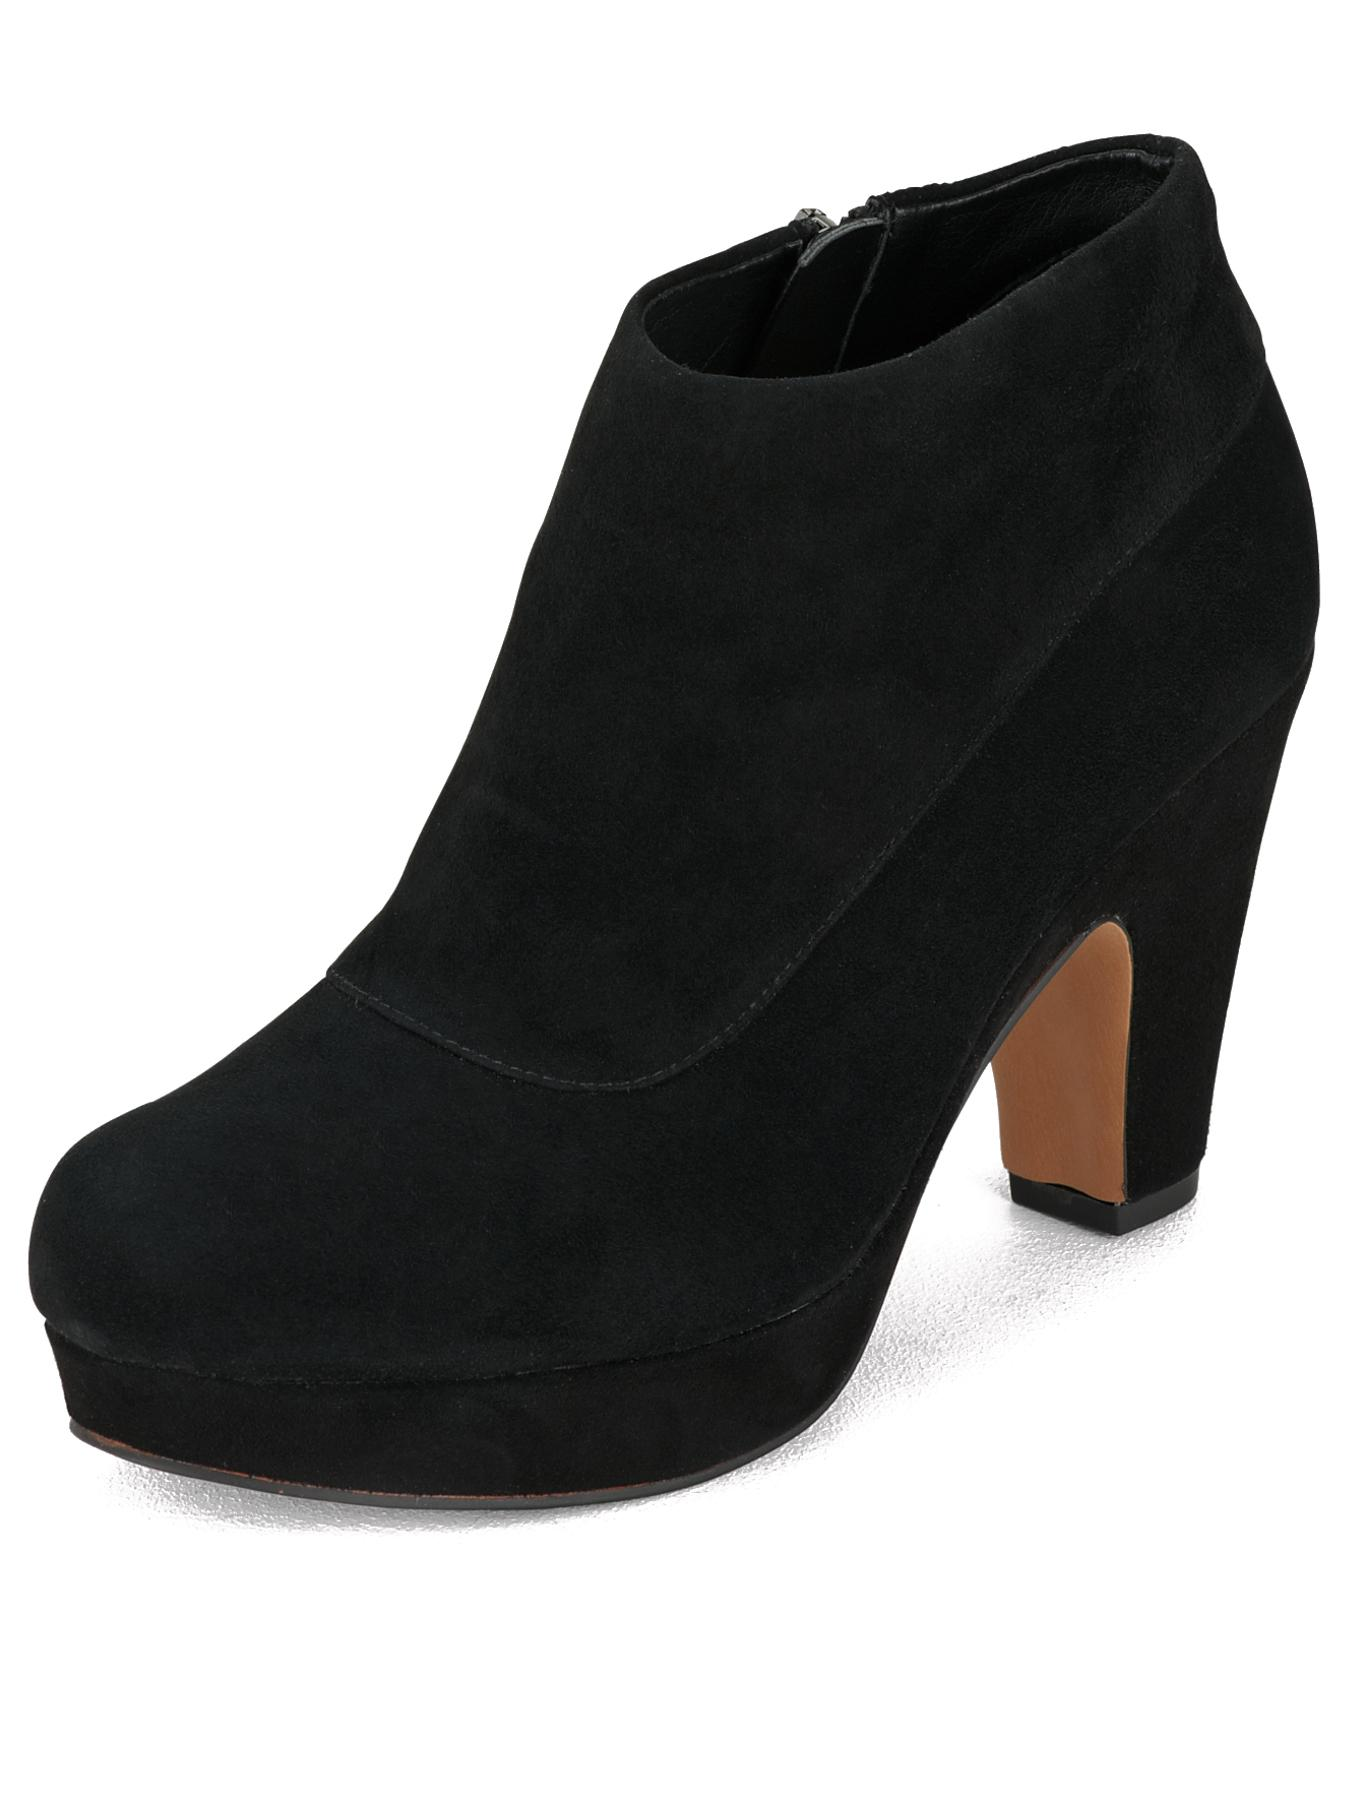 Katelina Bay Ankle Boots, Black